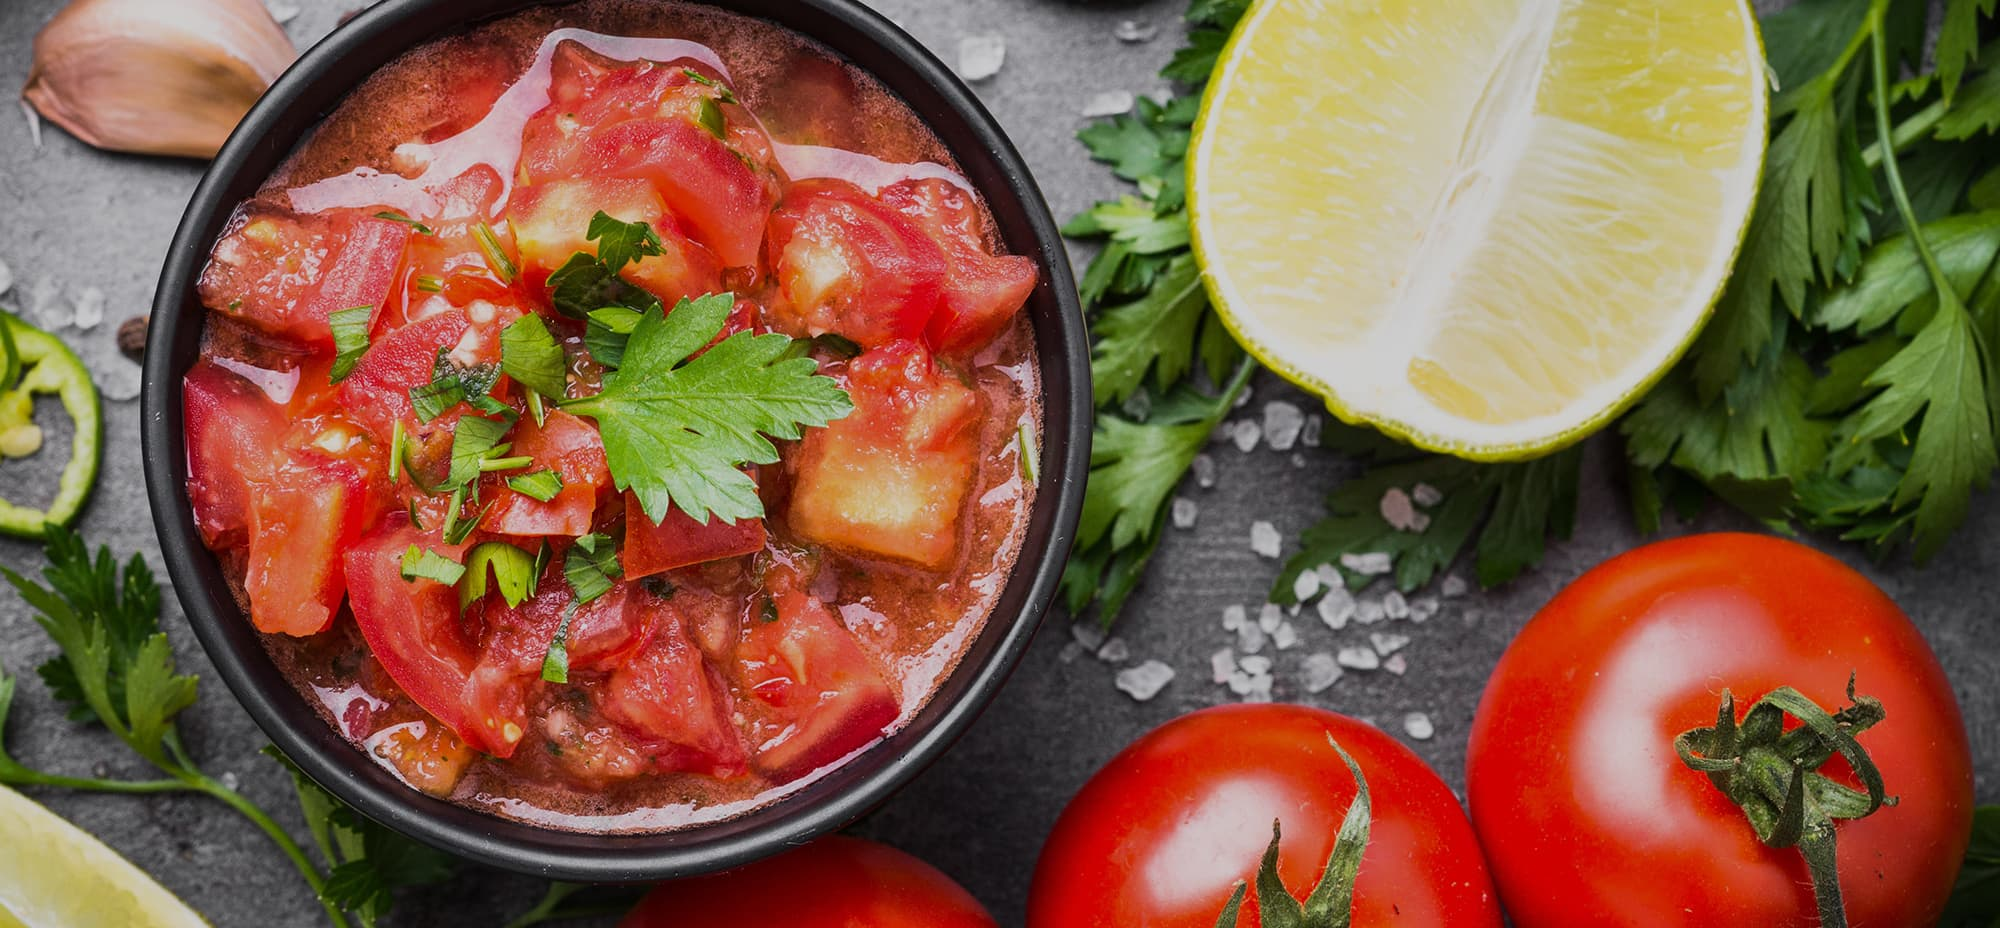 Photo is of tomato salsa